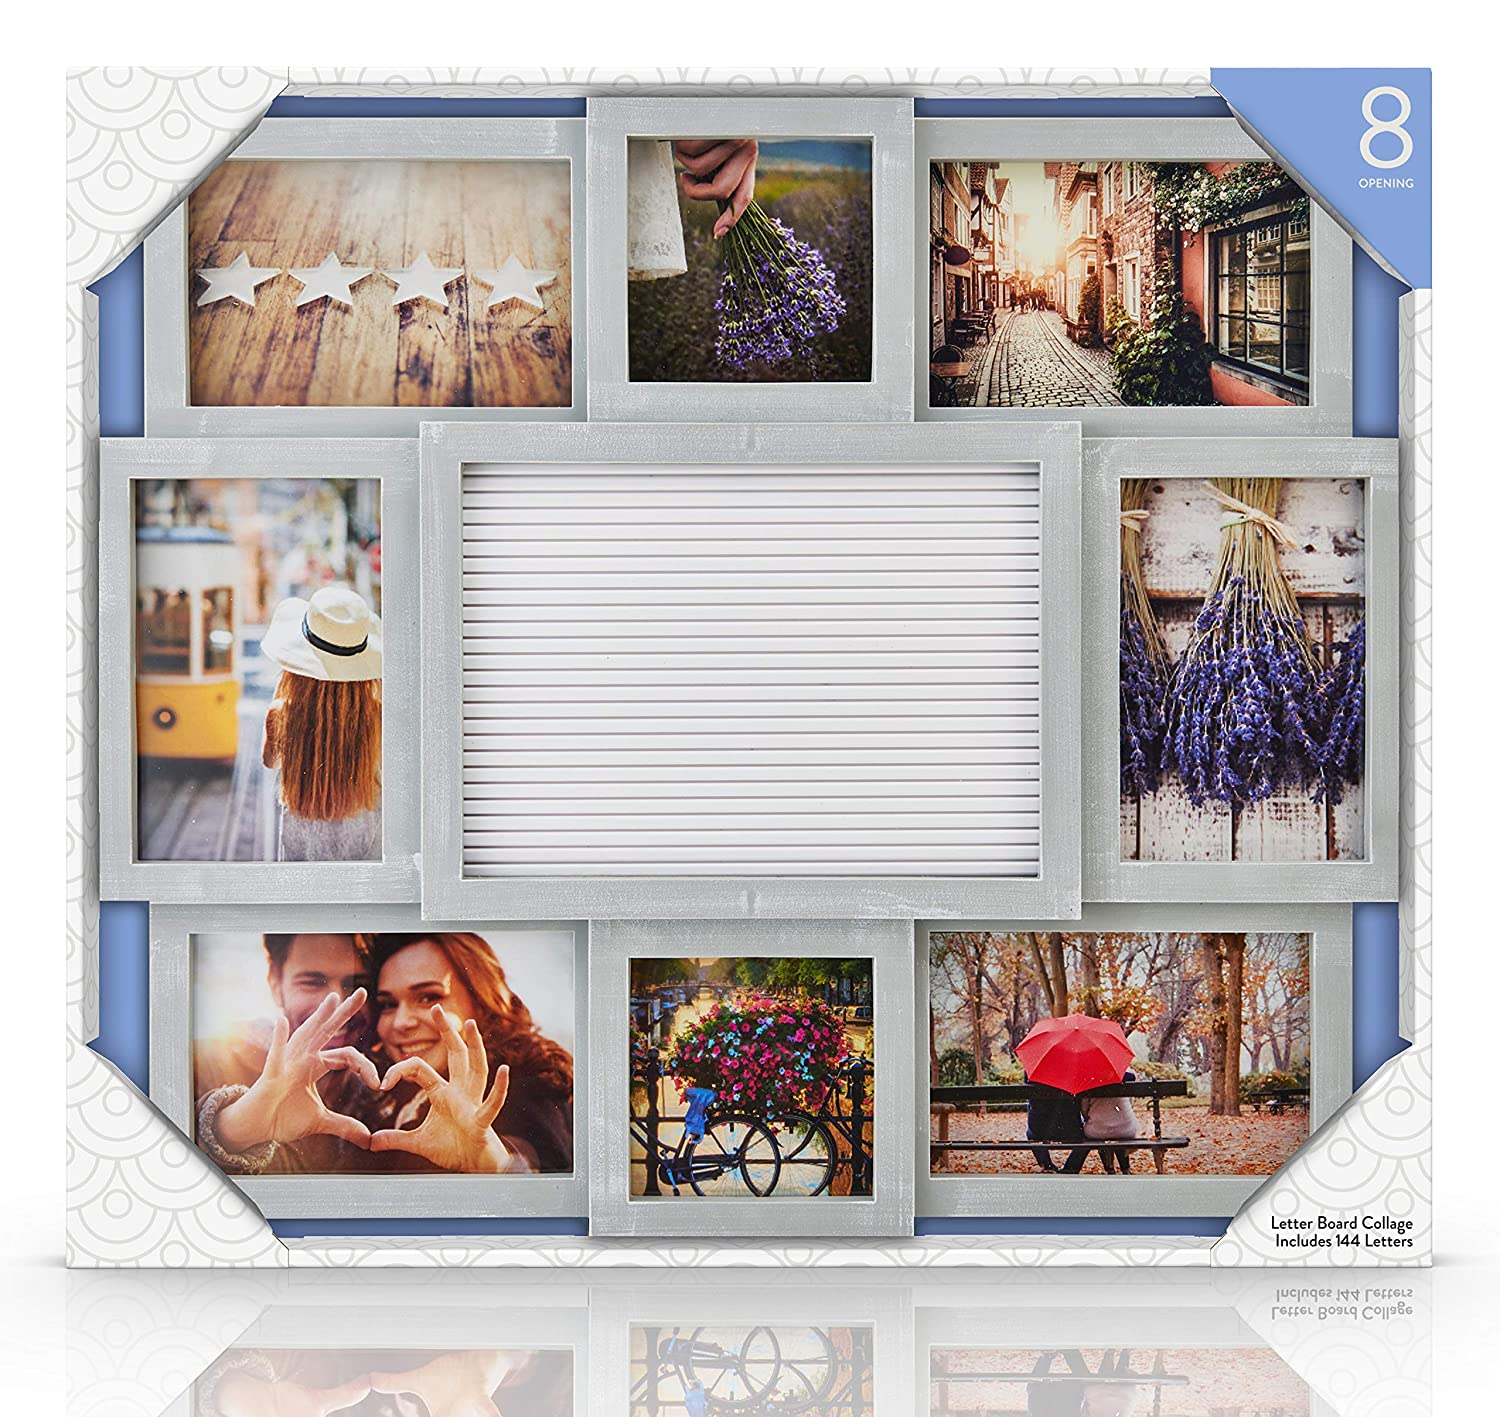 Amazon.com: MELANNCO Customizable Letter Board with 8-Opening Photo ...